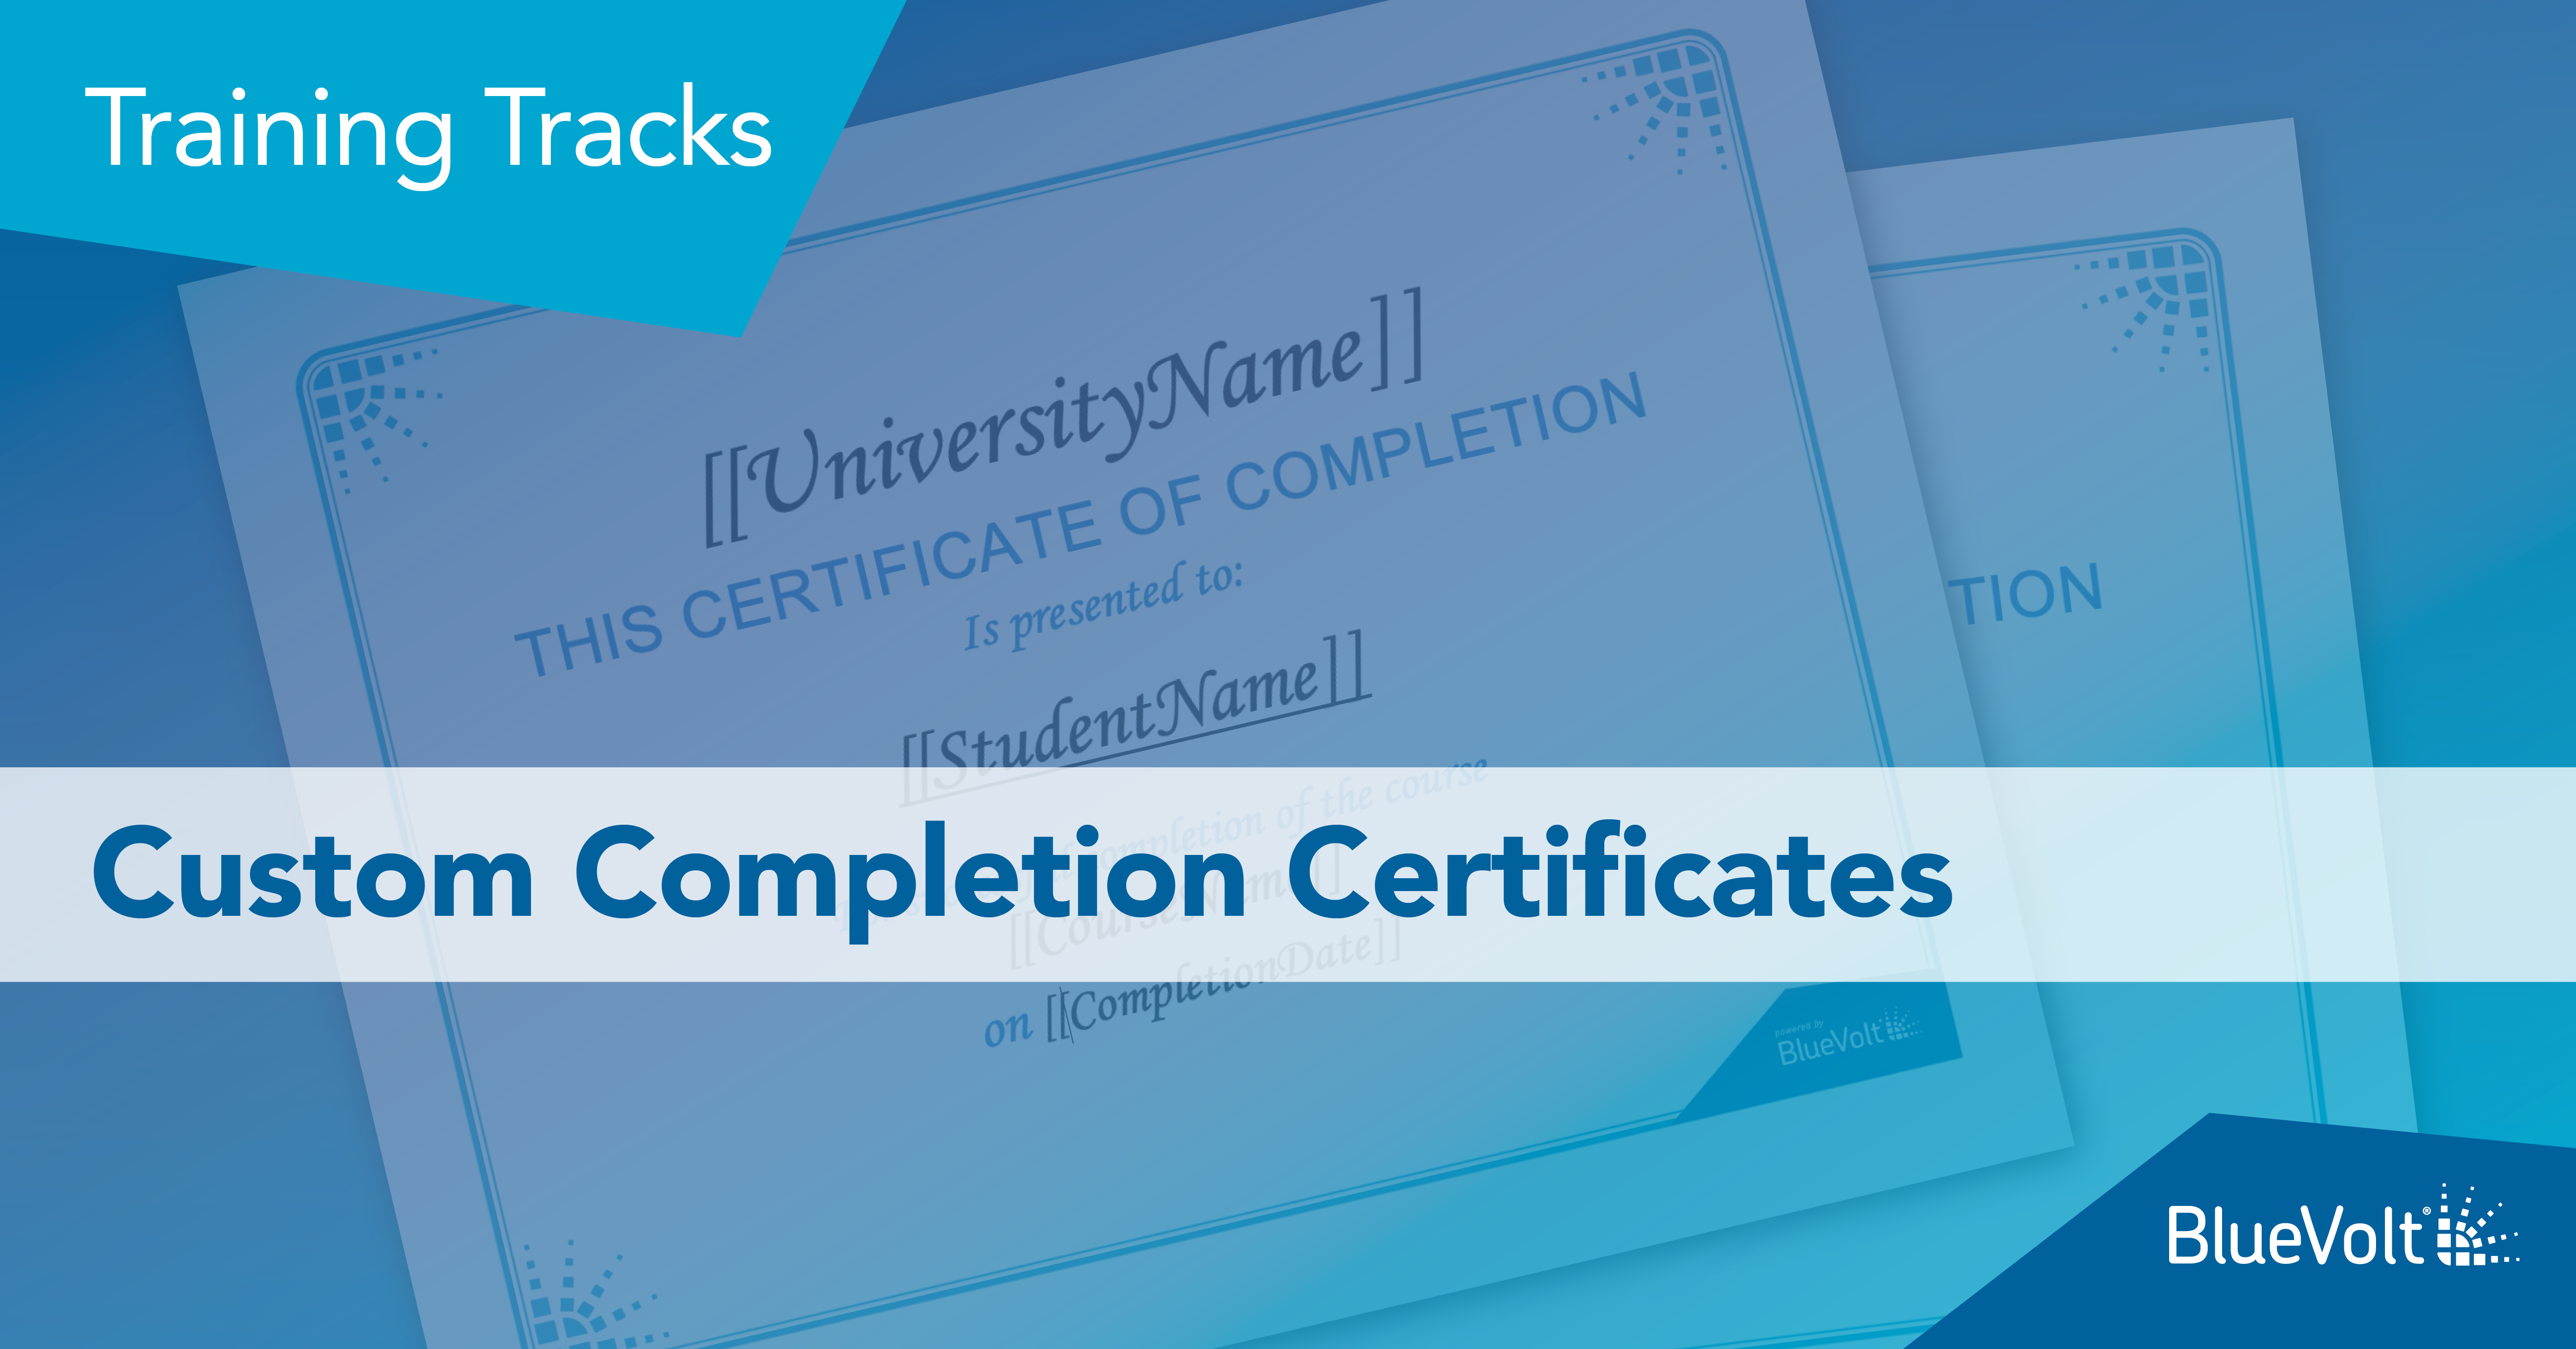 Custom Completion Certificates